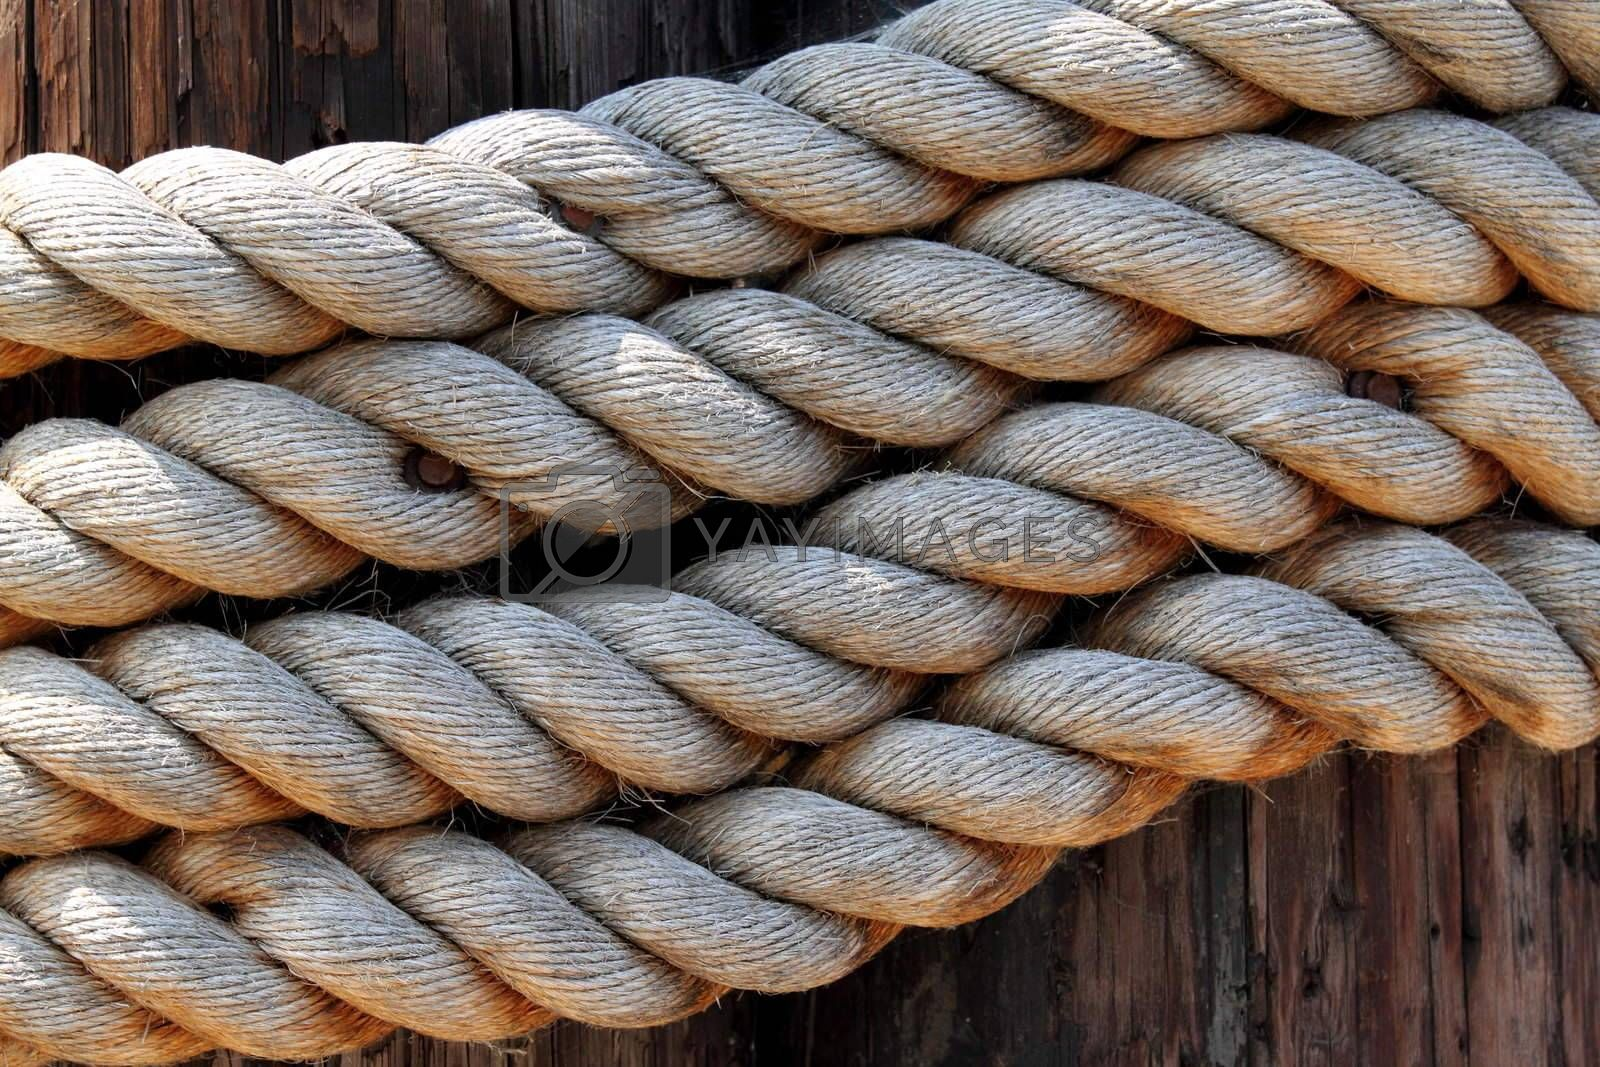 Royalty free image of rope by hlehnerer